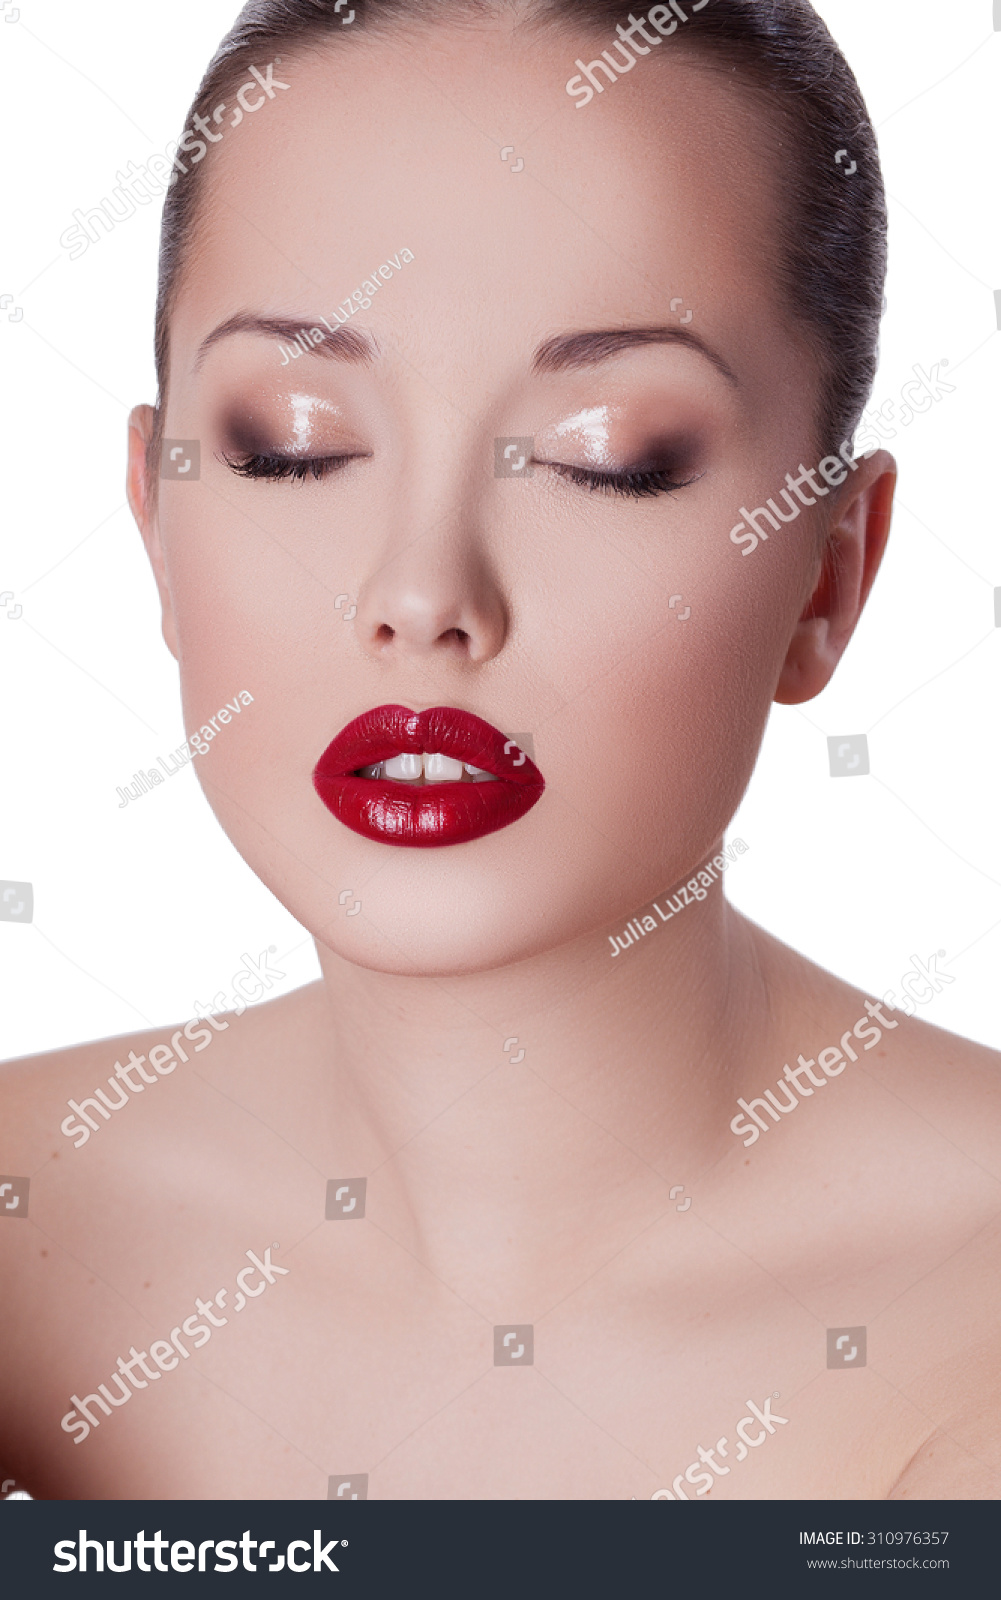 Asian face woman close up, wet makeup to her face, red lips, and moist eyes. BIG sexy lips, mouth open. Seductive Lips RED and isolated on a white ...